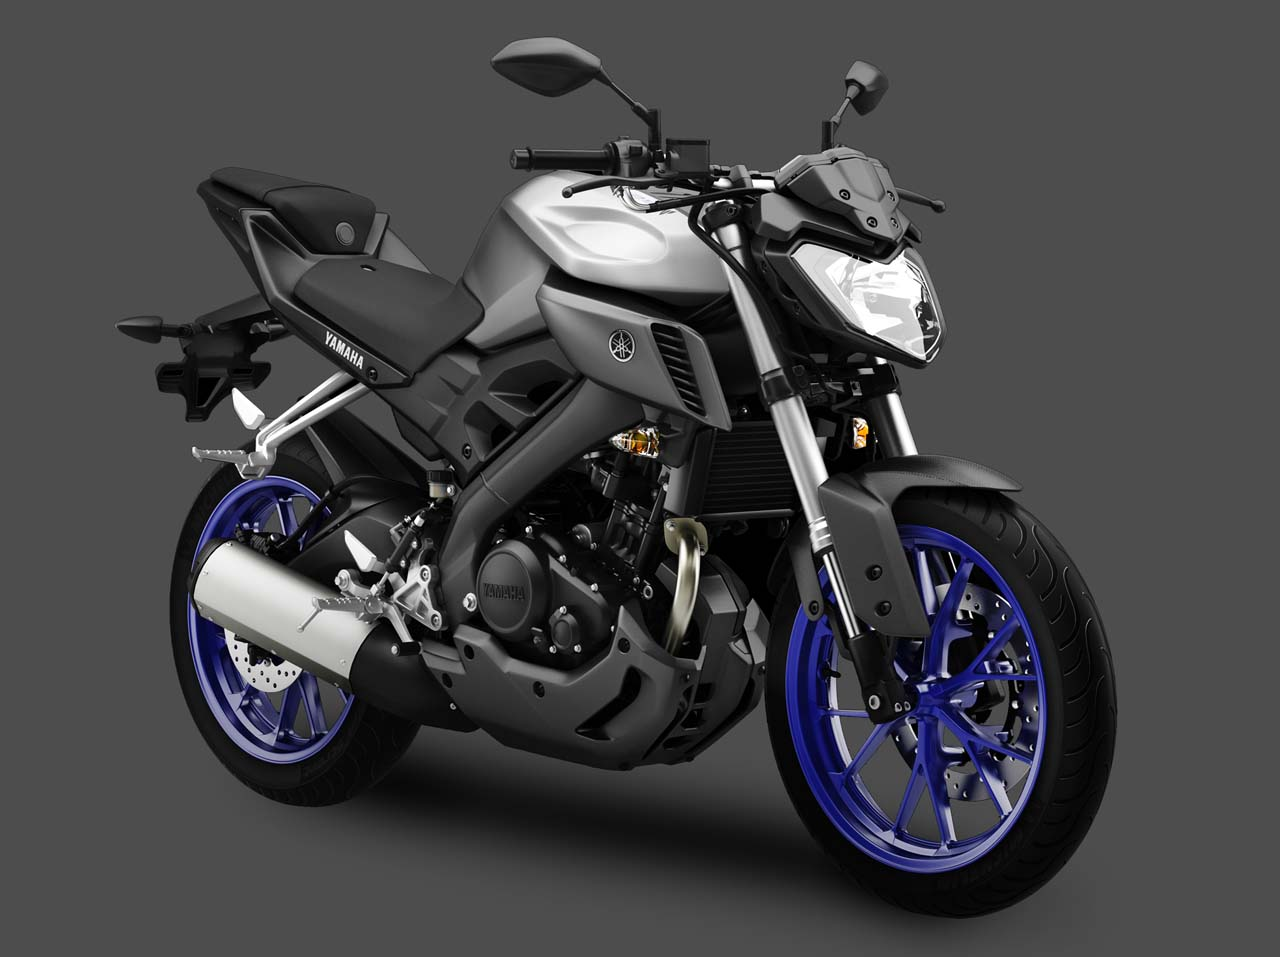 yamaha mt 125 yak t t ketimi ve teknik zellikleri. Black Bedroom Furniture Sets. Home Design Ideas